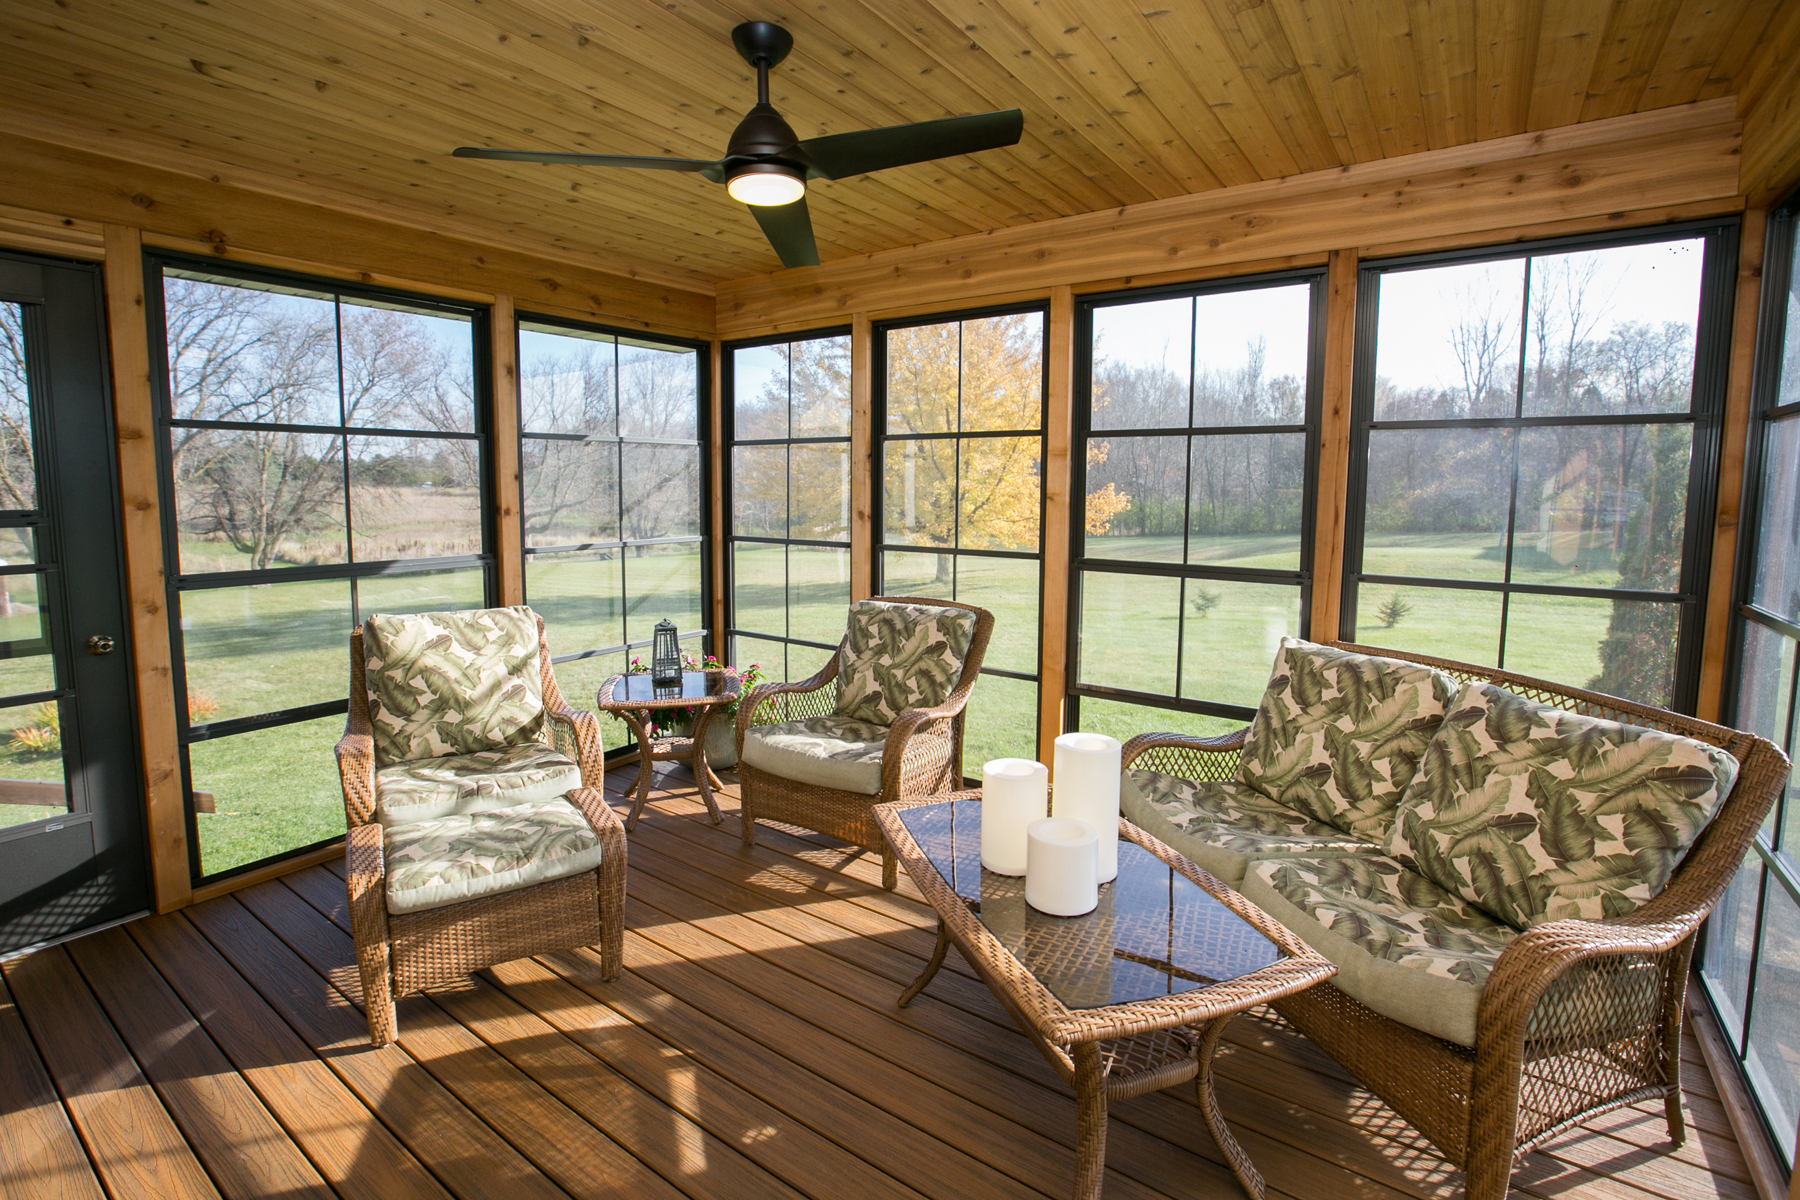 Lake elmo remodel and sunroom jg hause construction for Porches login